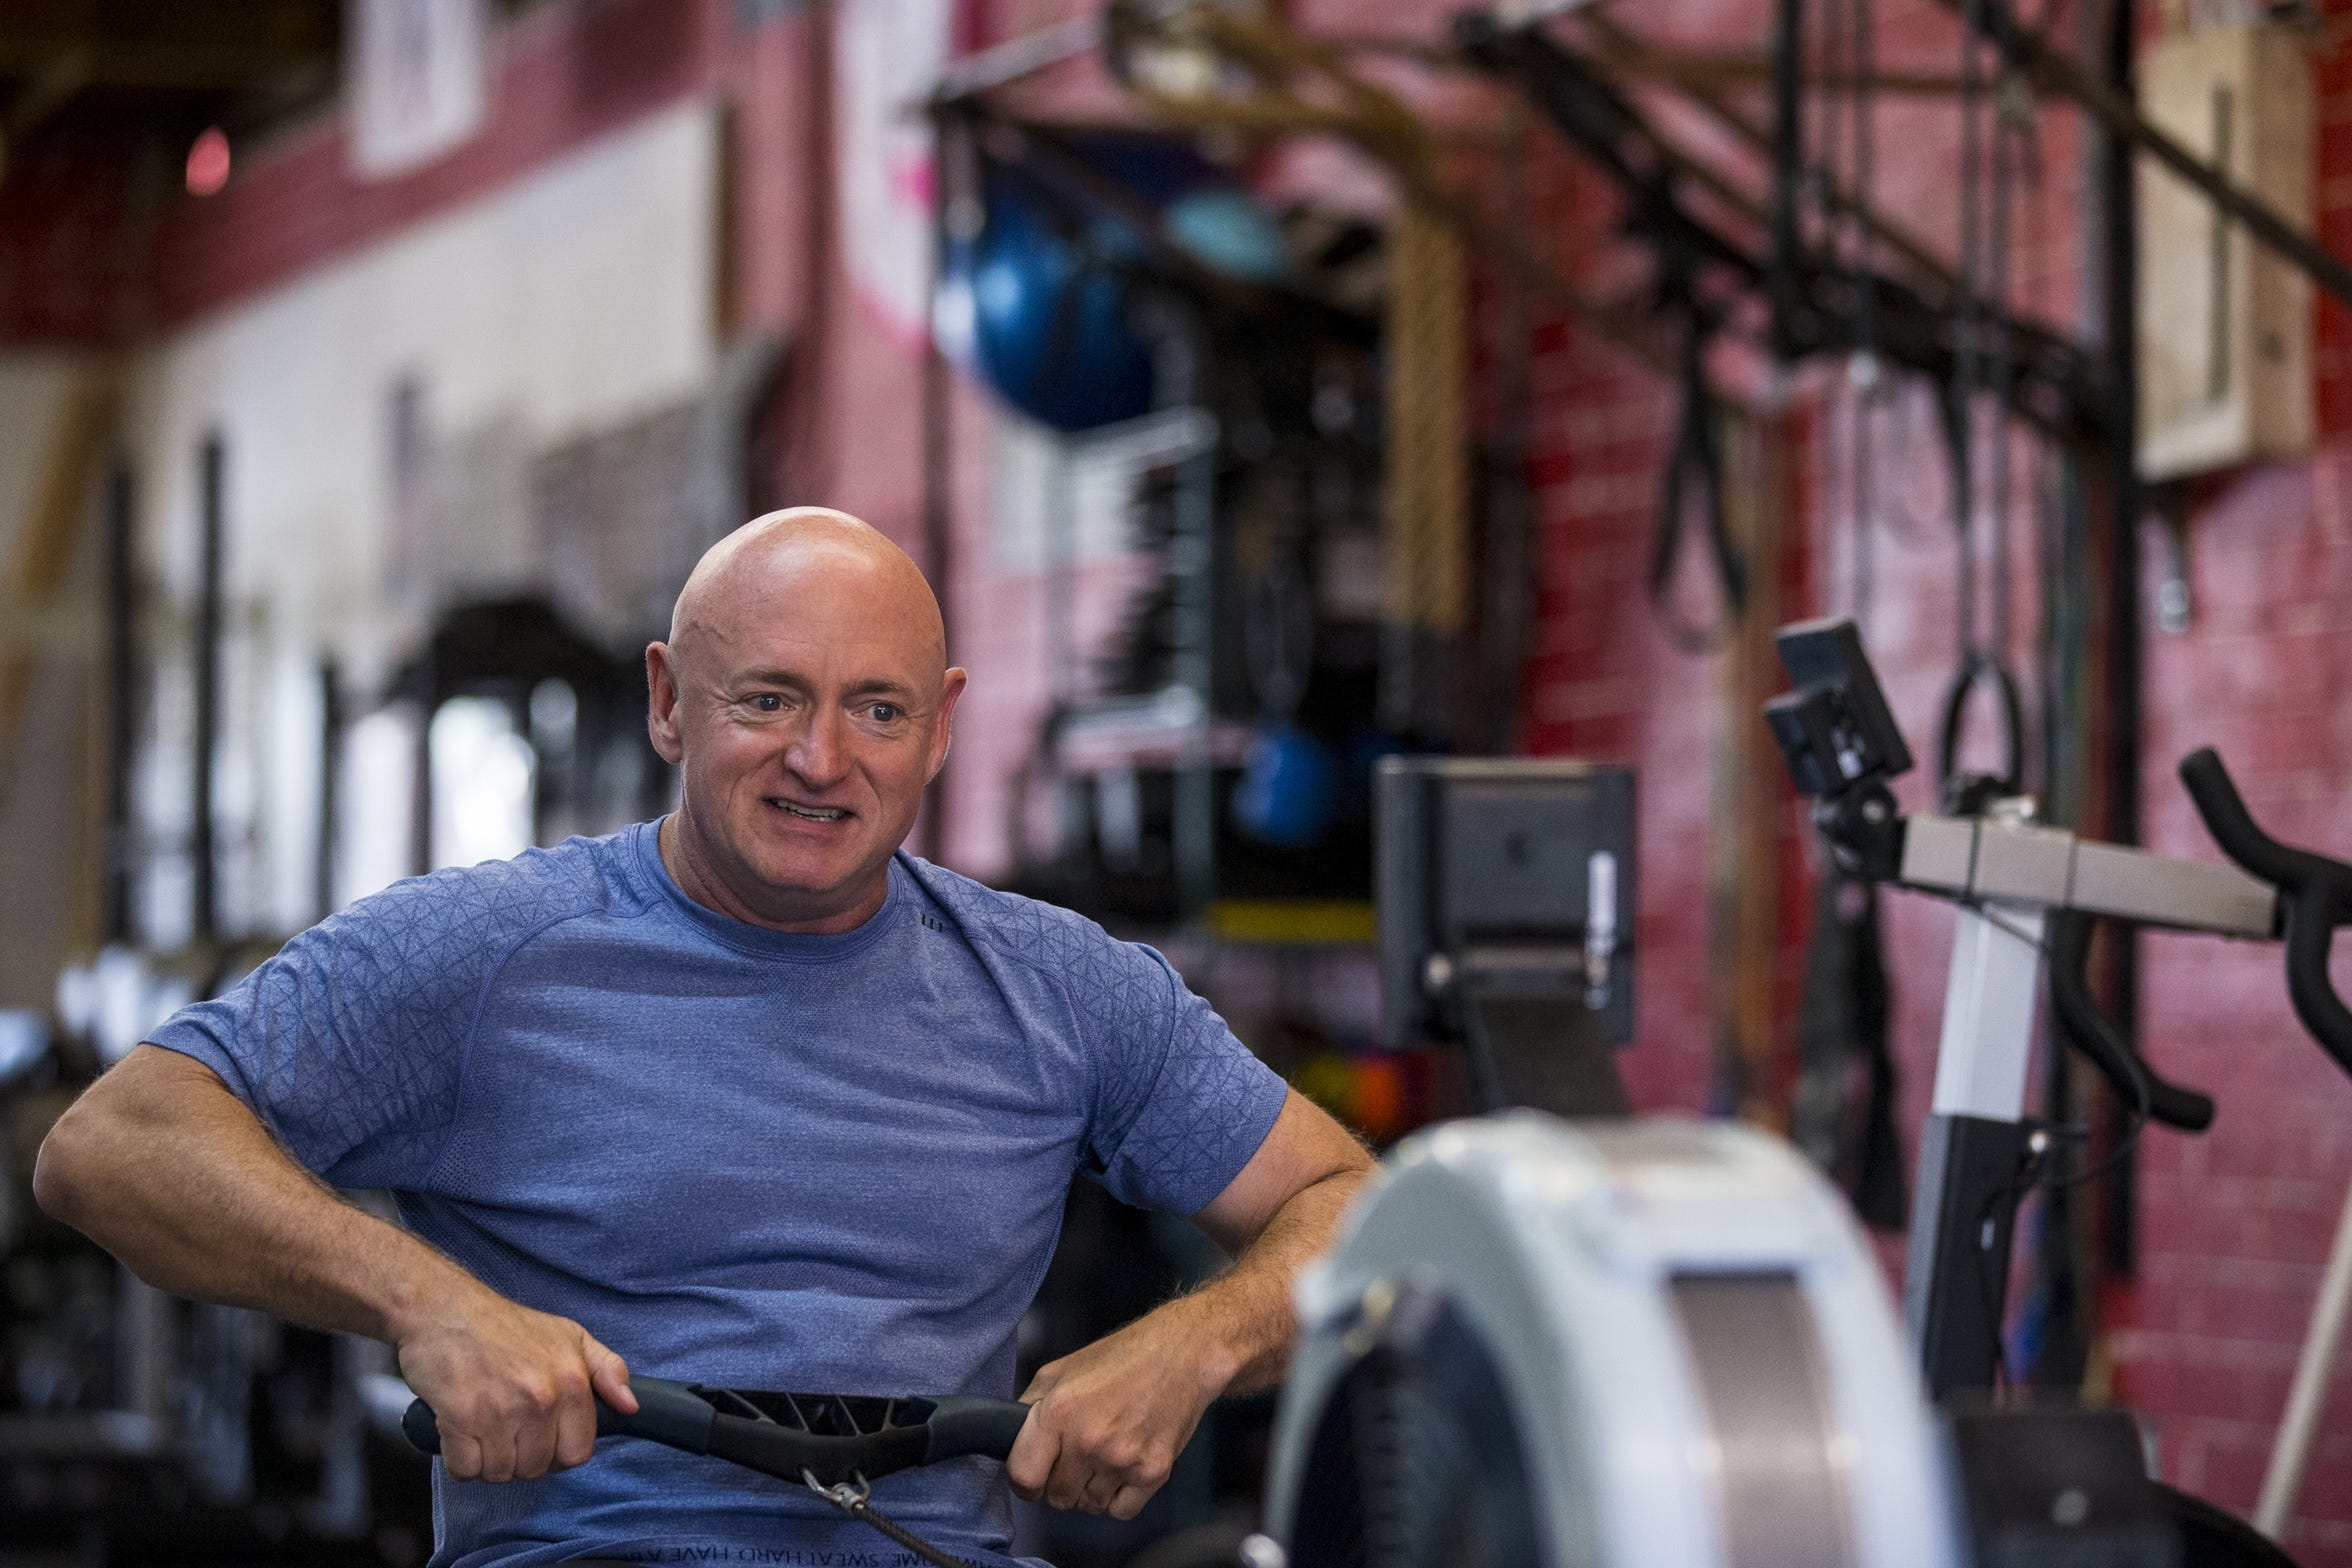 Mark Kelly says the Newtown mass shooting in December 2012 is what spurred wife Gabby Giffords and himself to step into the gun-control debate.